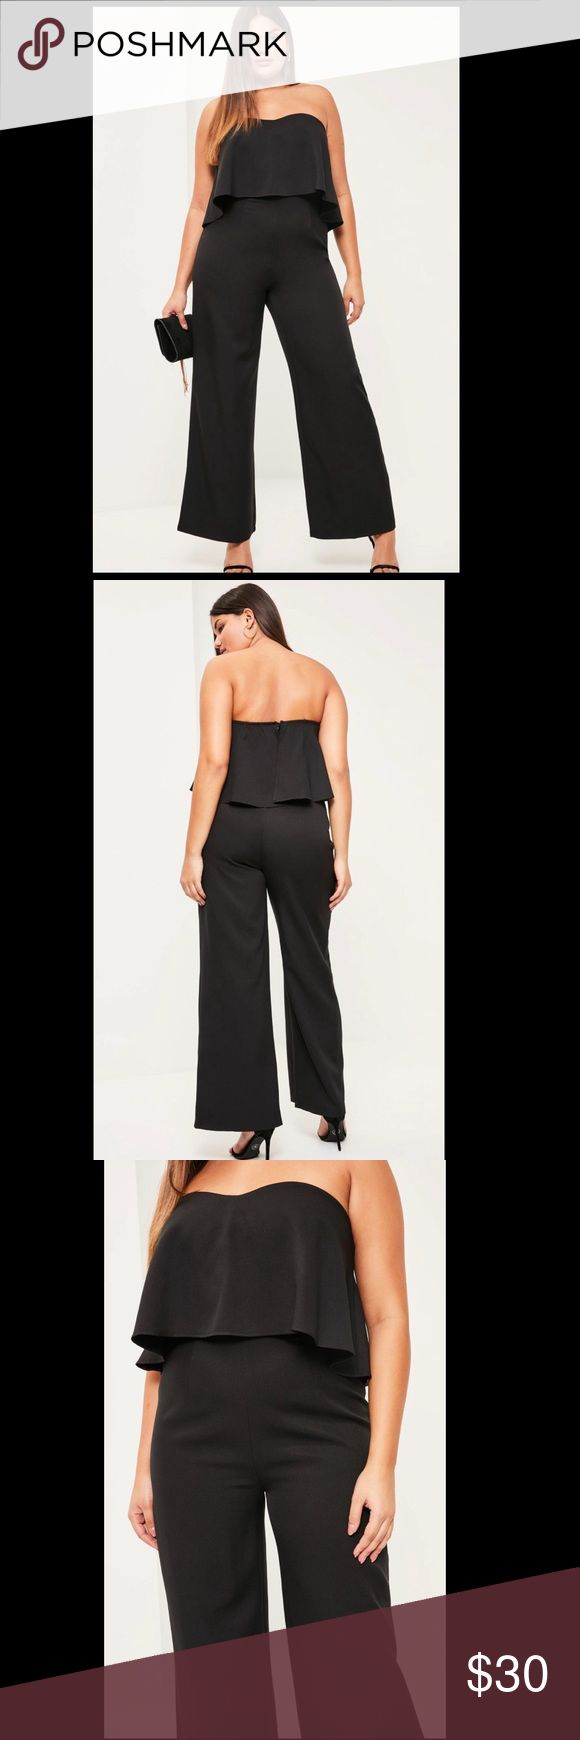 NWT Missguided Jumpsuit Black strapless jumpsuit with frill overleg and wide leg pants! Super cute and flattering! Never worn! New with tags Missguided Other